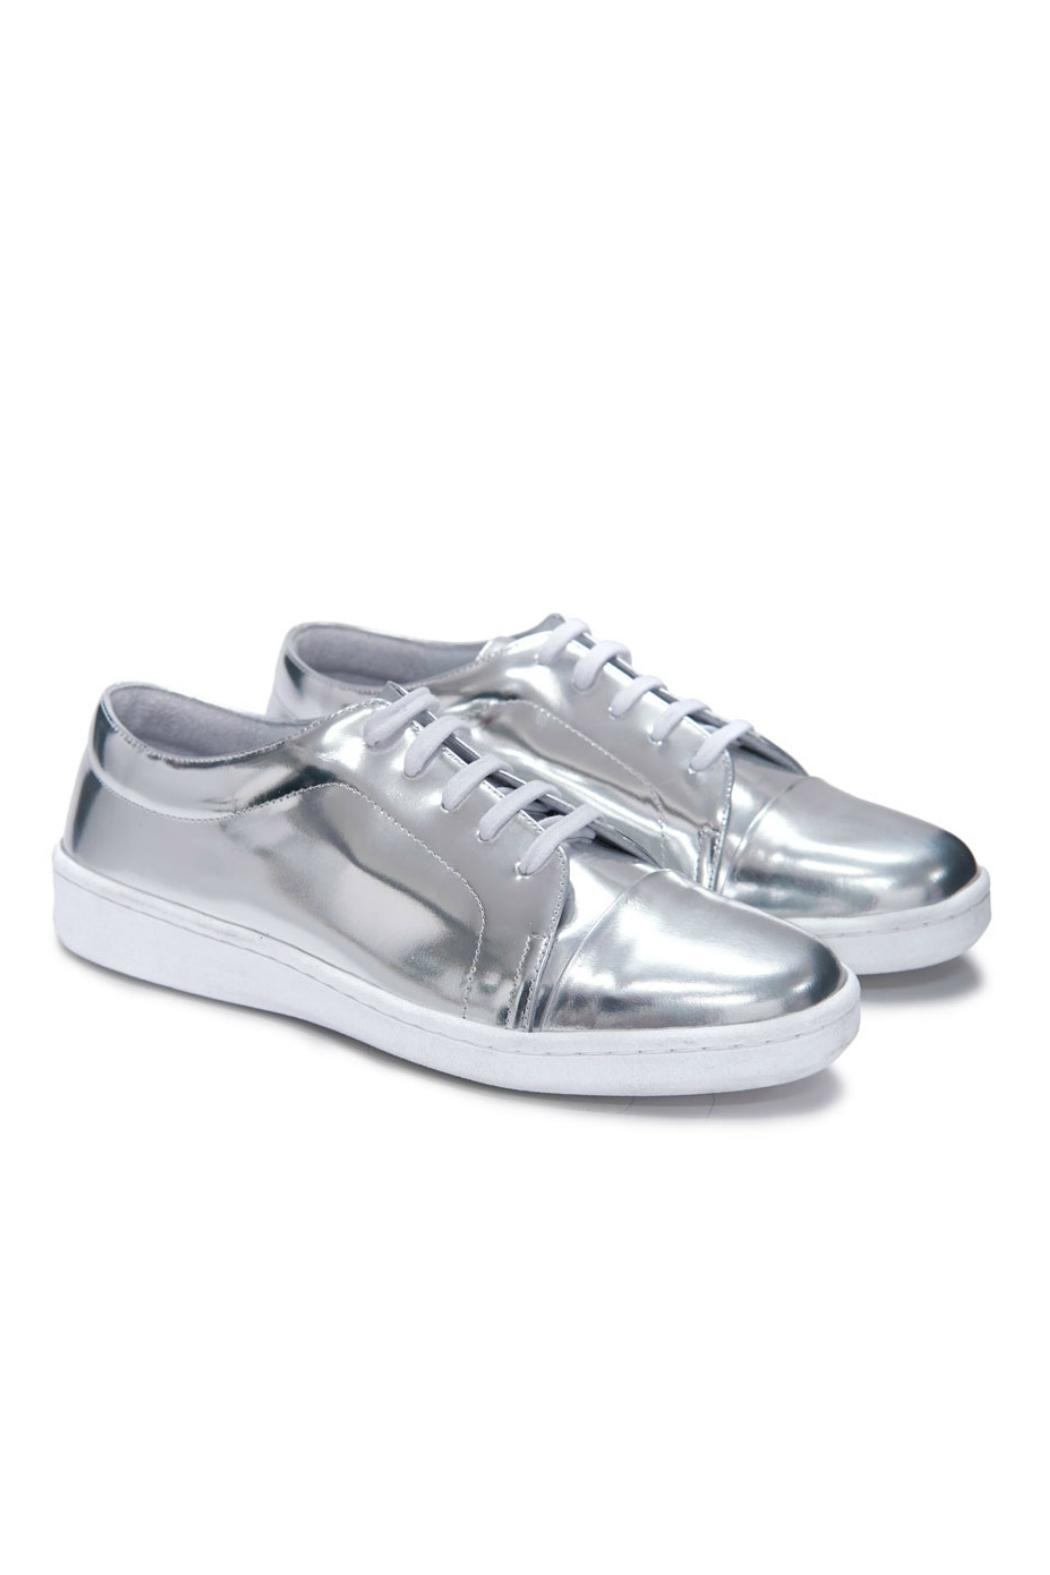 Miista Silver Sneaker from Des Moines by Peep Toe — Shoptiques